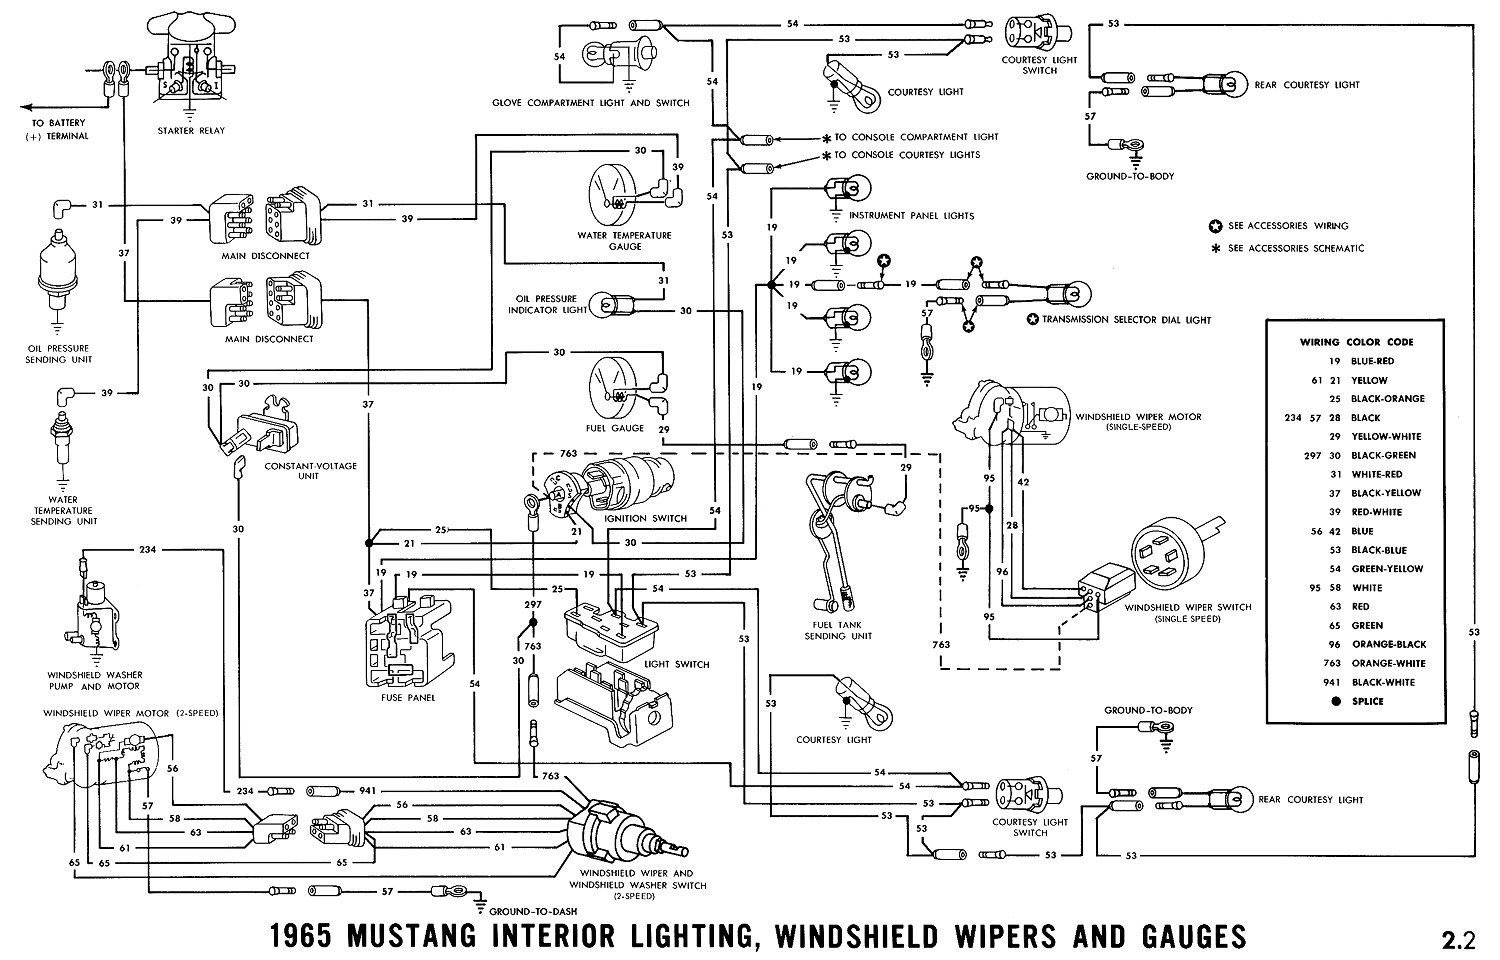 1965g 1965 mustang wiring diagrams average joe restoration 1965 ford mustang wiring diagrams at mr168.co